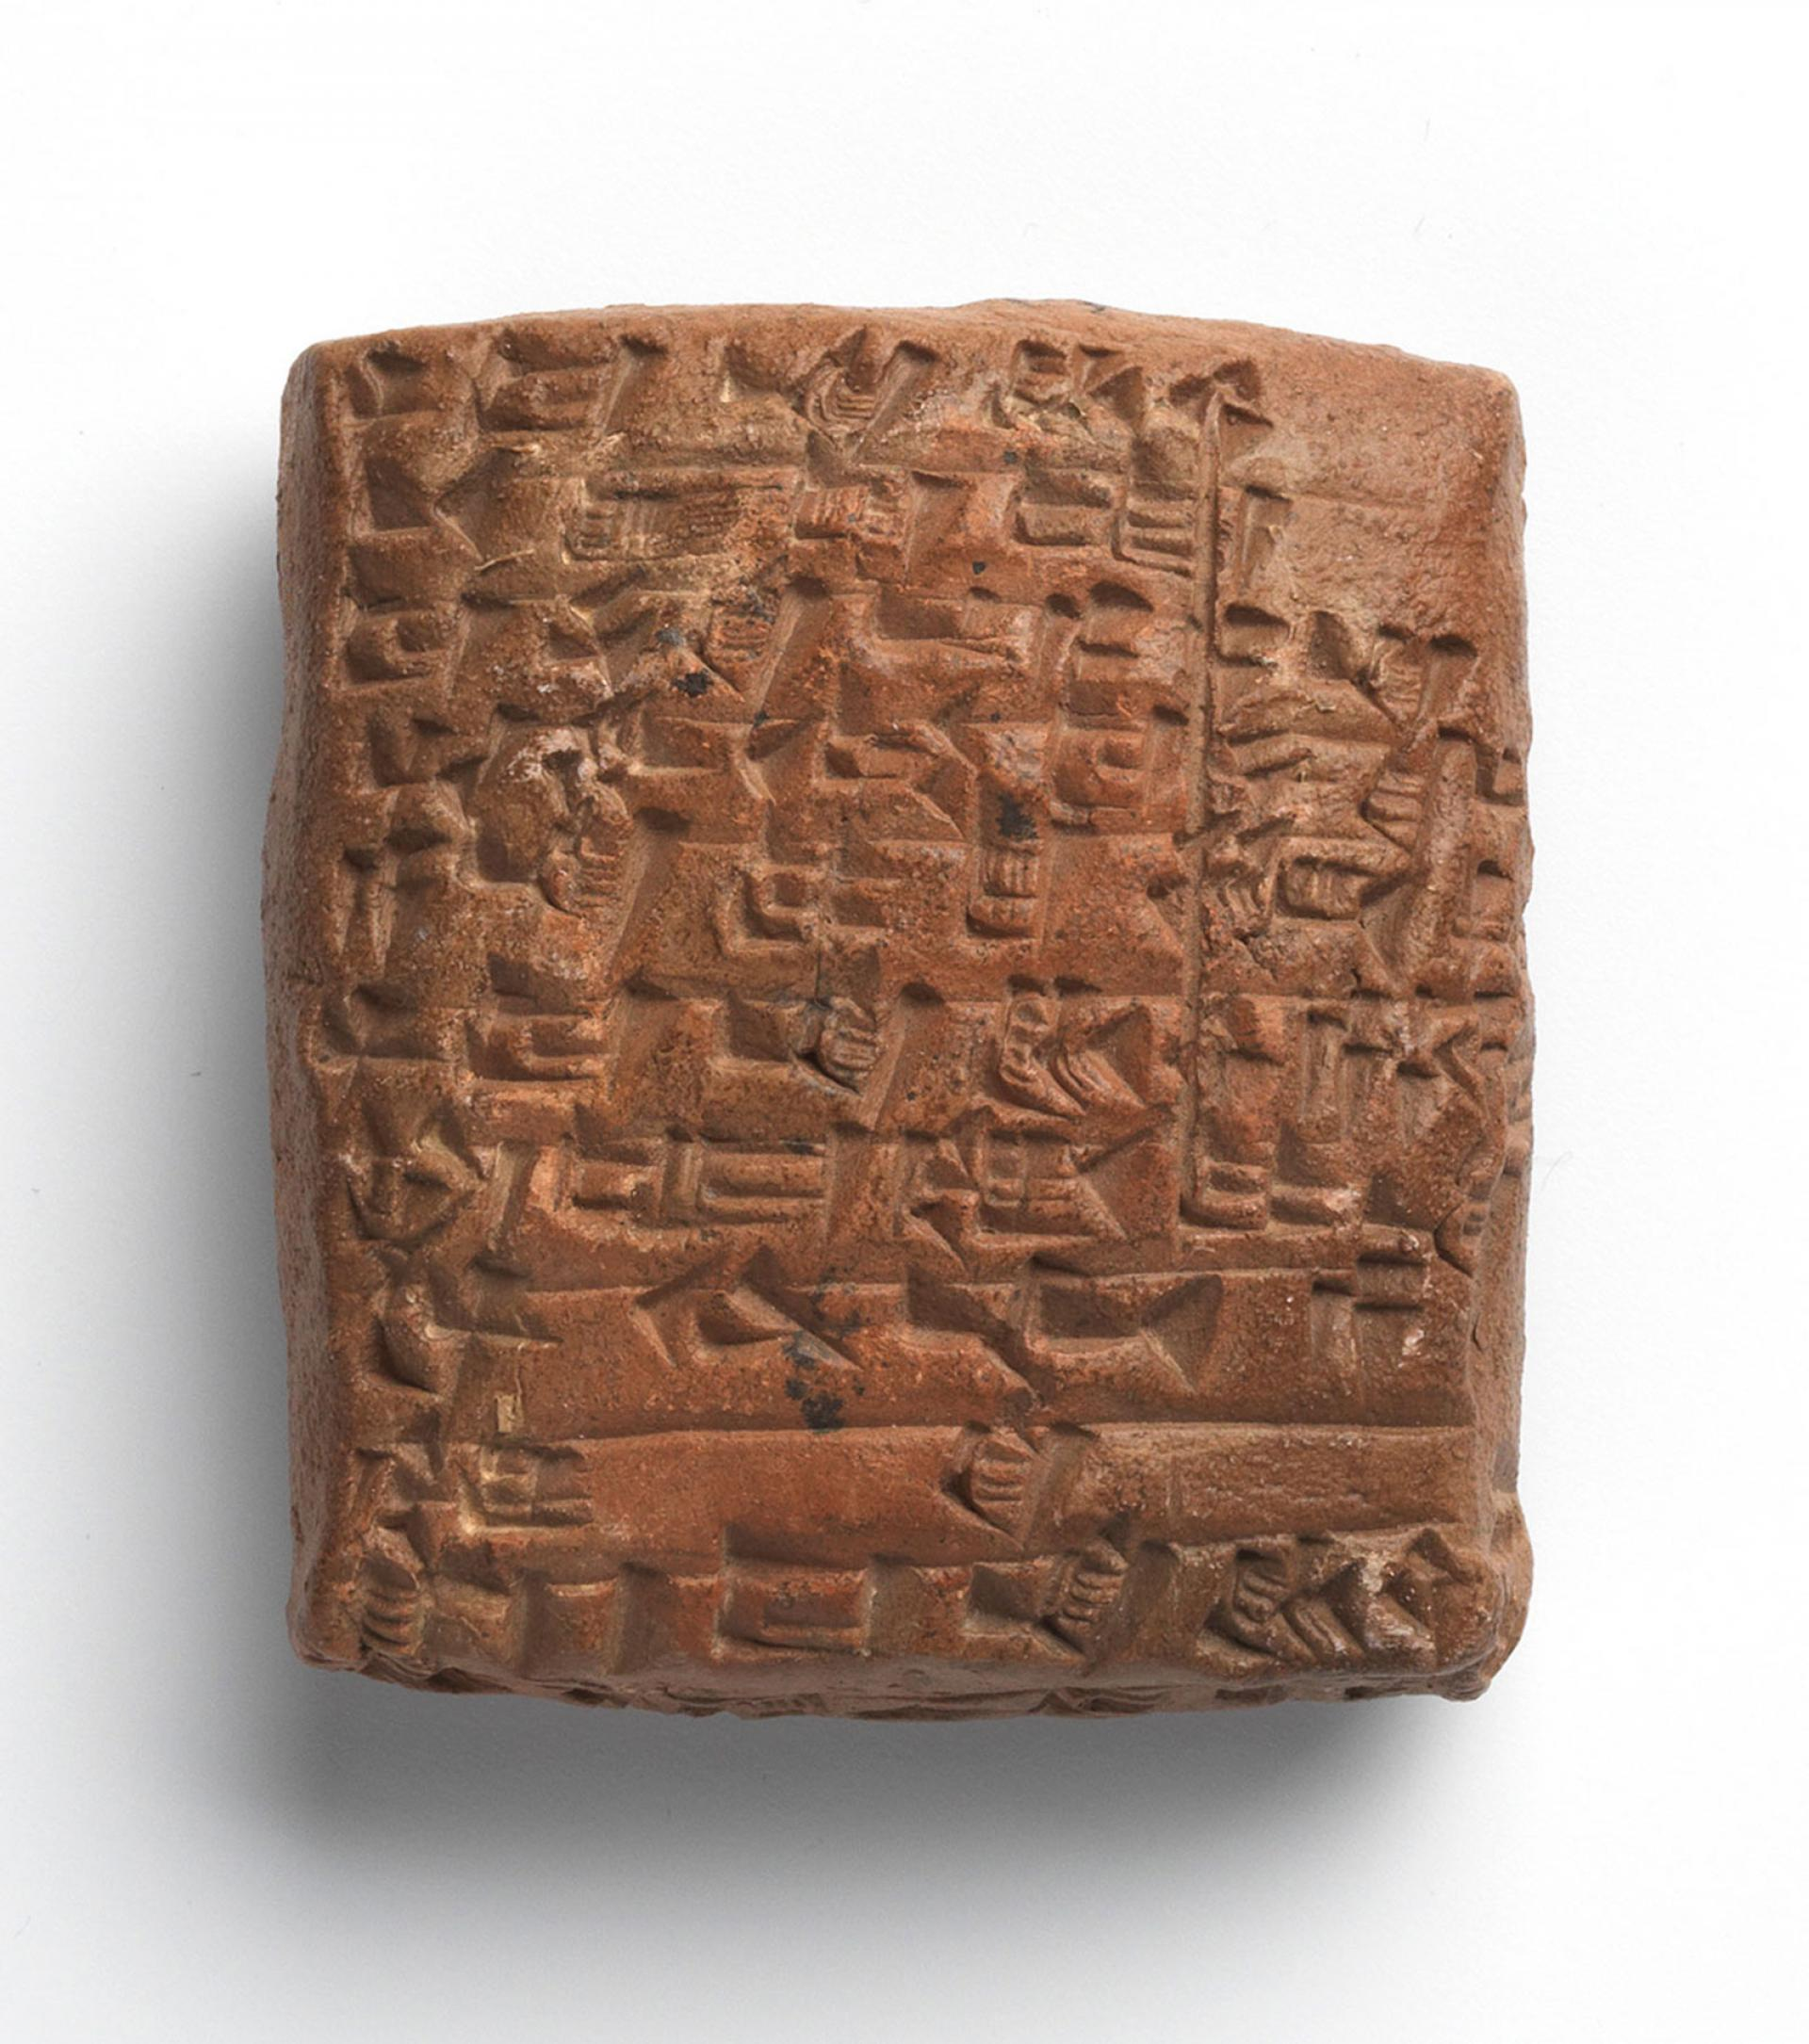 SHM 11593 - Cuneiform tabletTerracottaOld Assyrian Trade Colonies PeriodFirst quarter of 2nd millenium BCCentral Anatolia